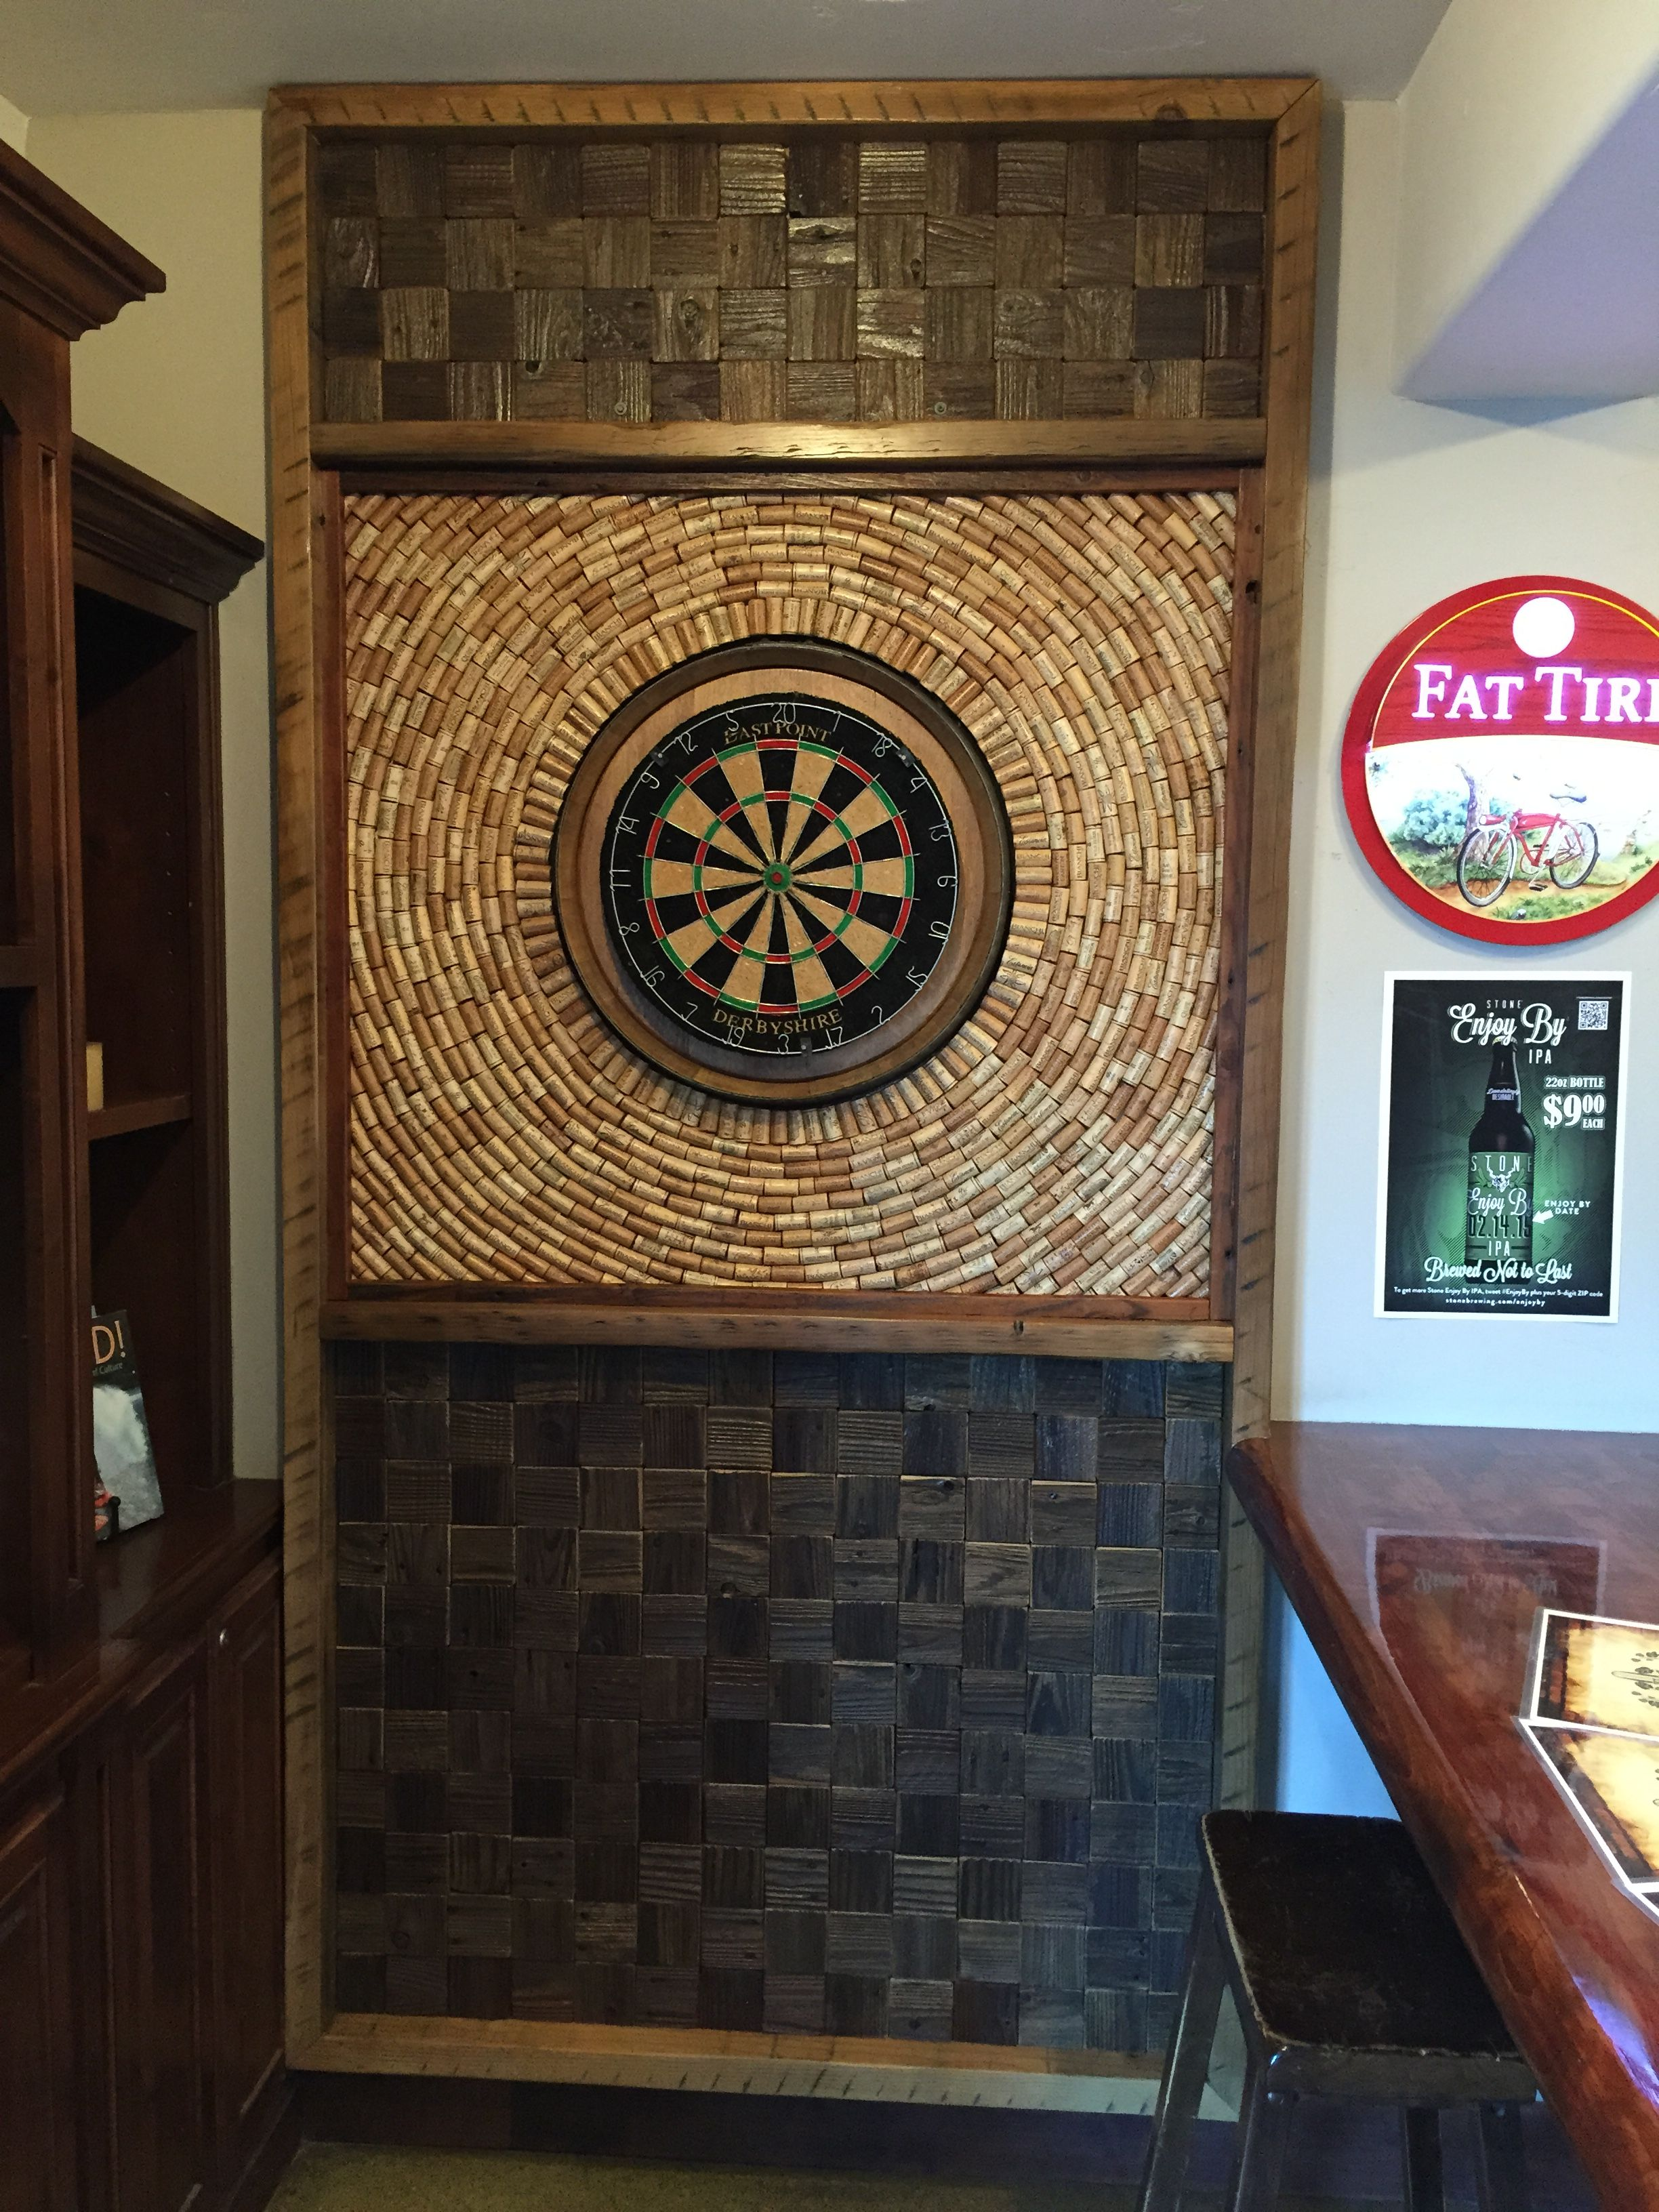 This dart board back board is located at The Boardroom Pub & Grill